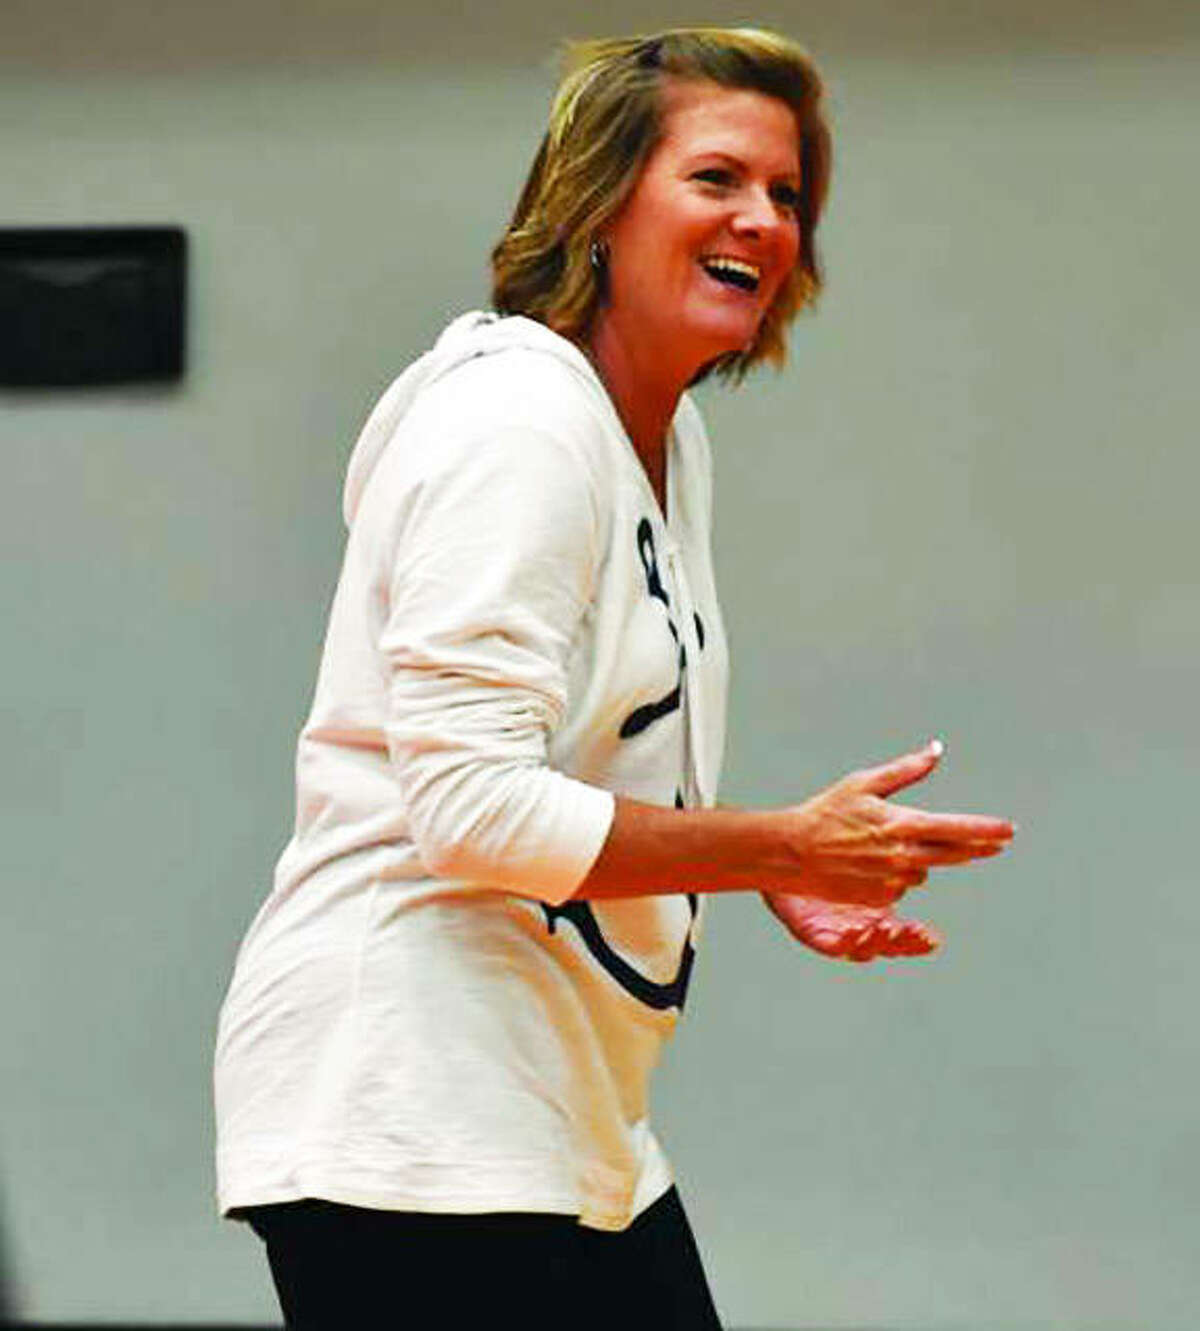 Lisa Orlet stepped down as head coach of the Edwardsville girls volleyball team after a two-year stint that included a 55-20 record with two Southwestern Conference and two regional championships.